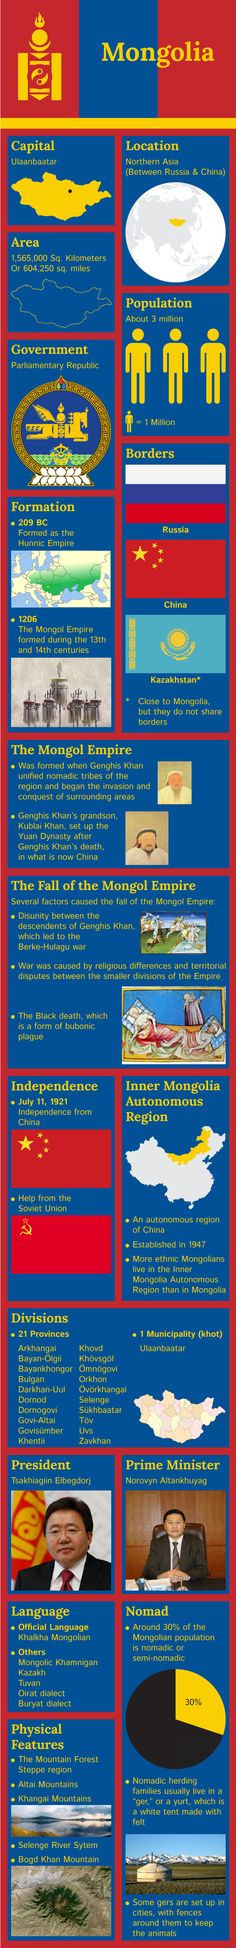 Infographic of Mongolia Facts